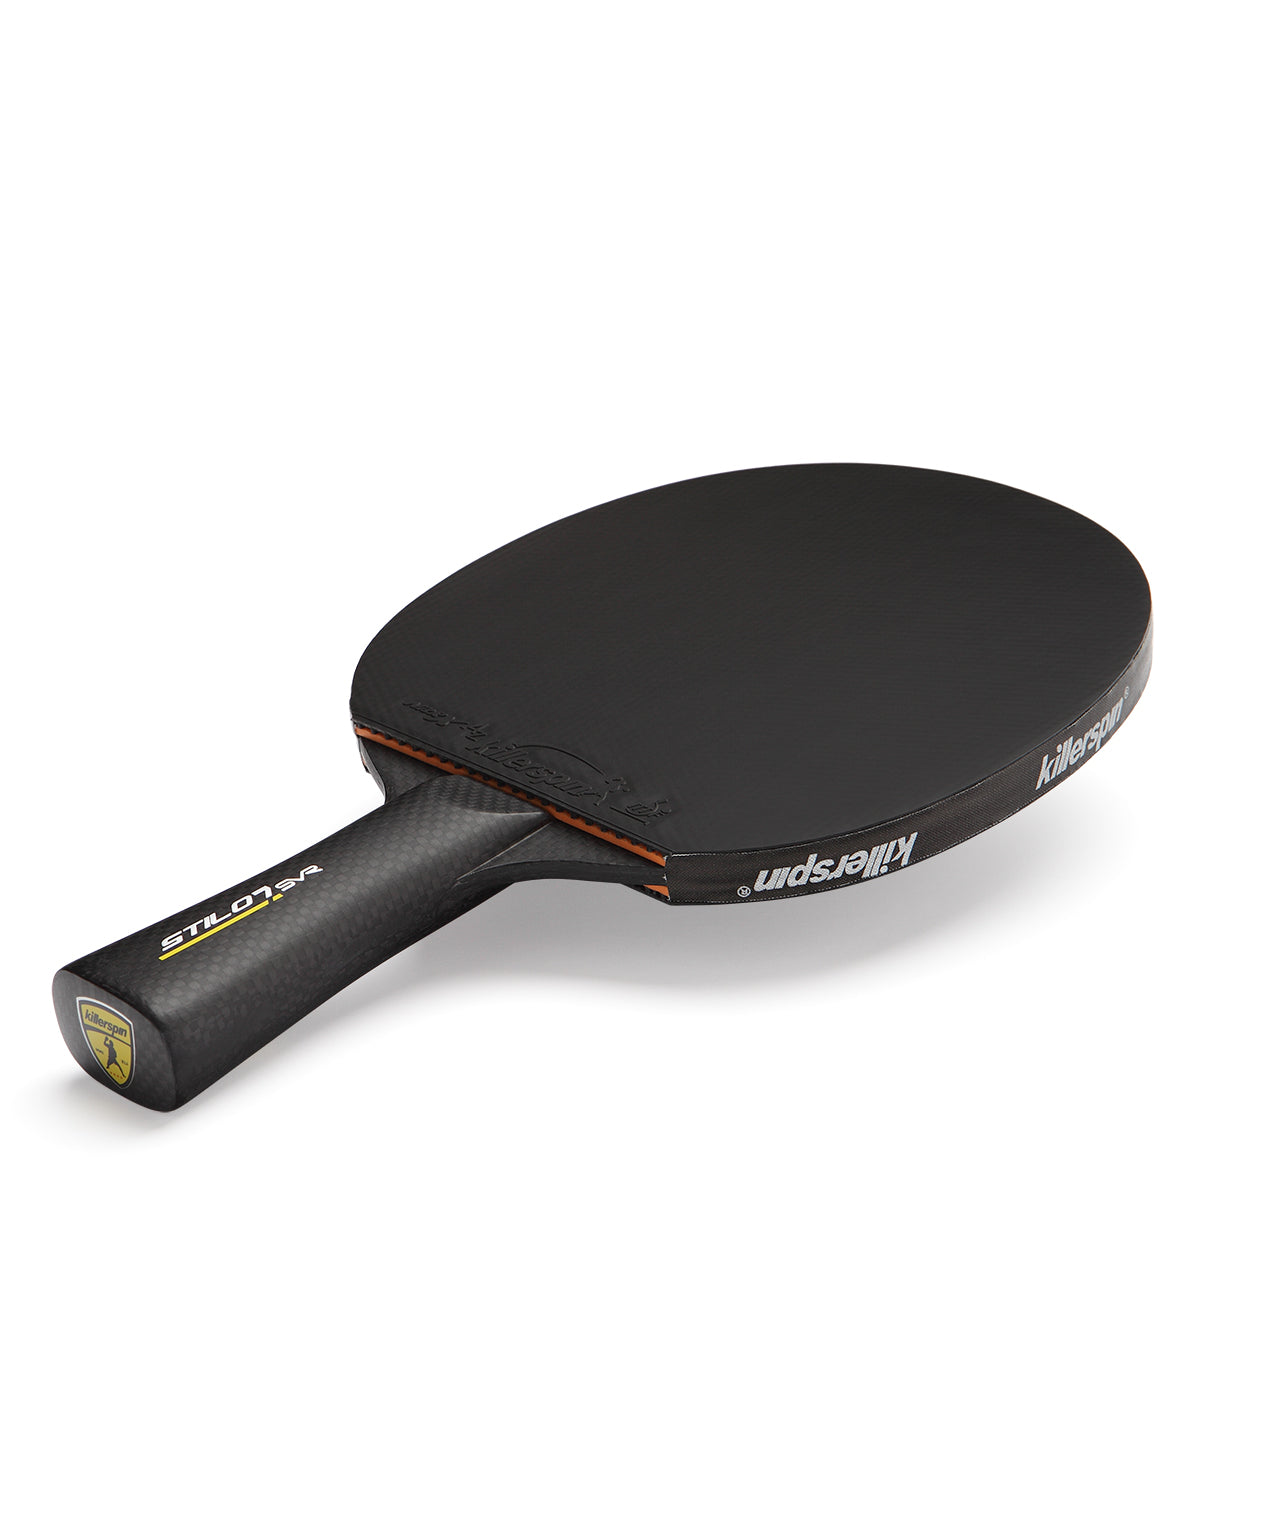 Killerspin SVR Ping Pong Paddle Stilo7 SVR - Racket